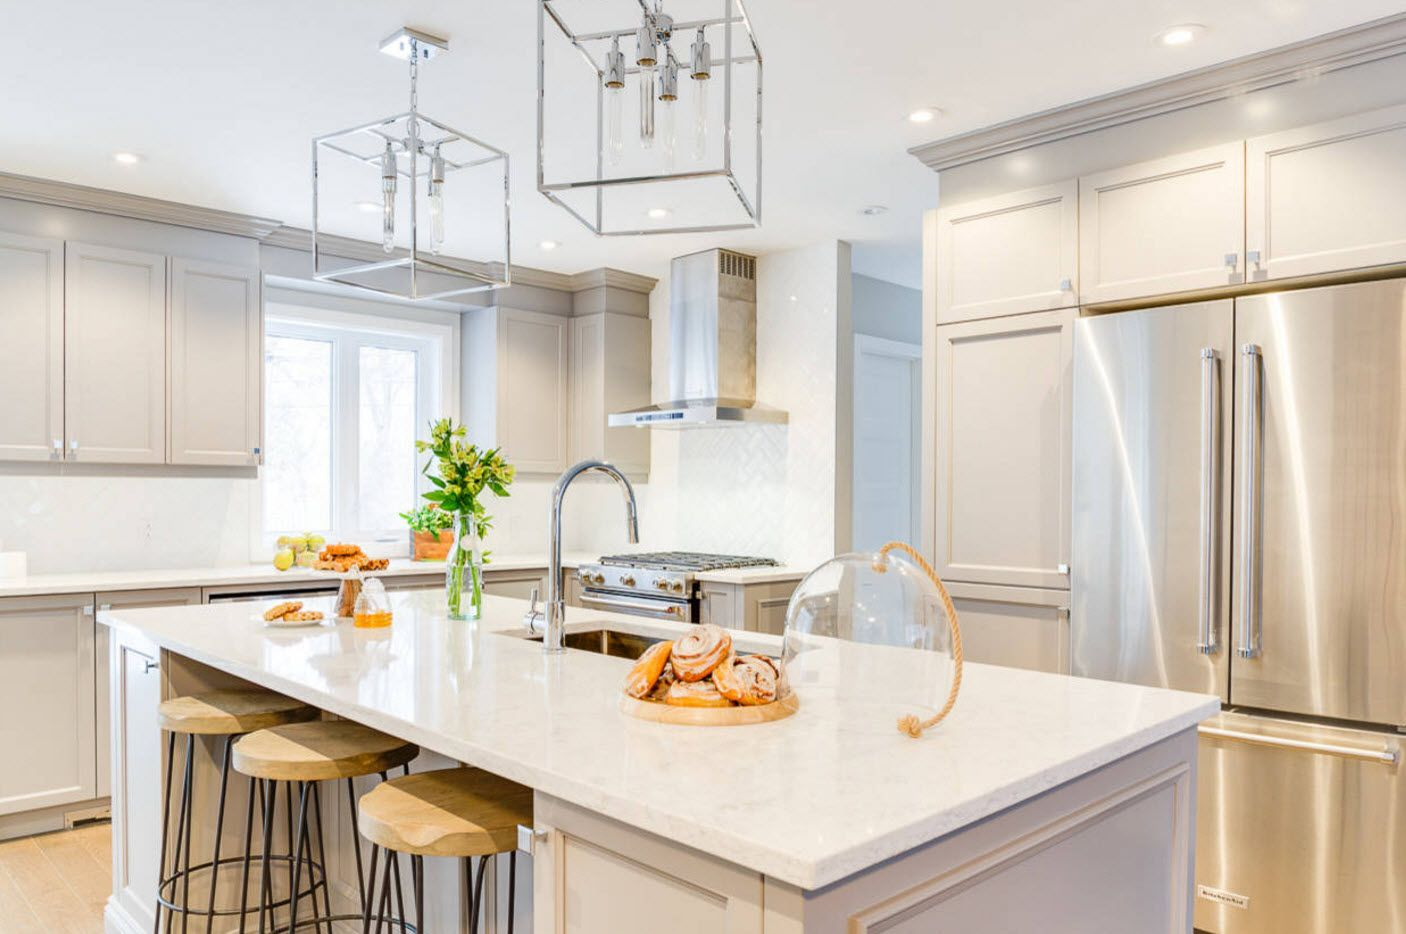 Rustic and modern styles mix in kitchen interior 2017